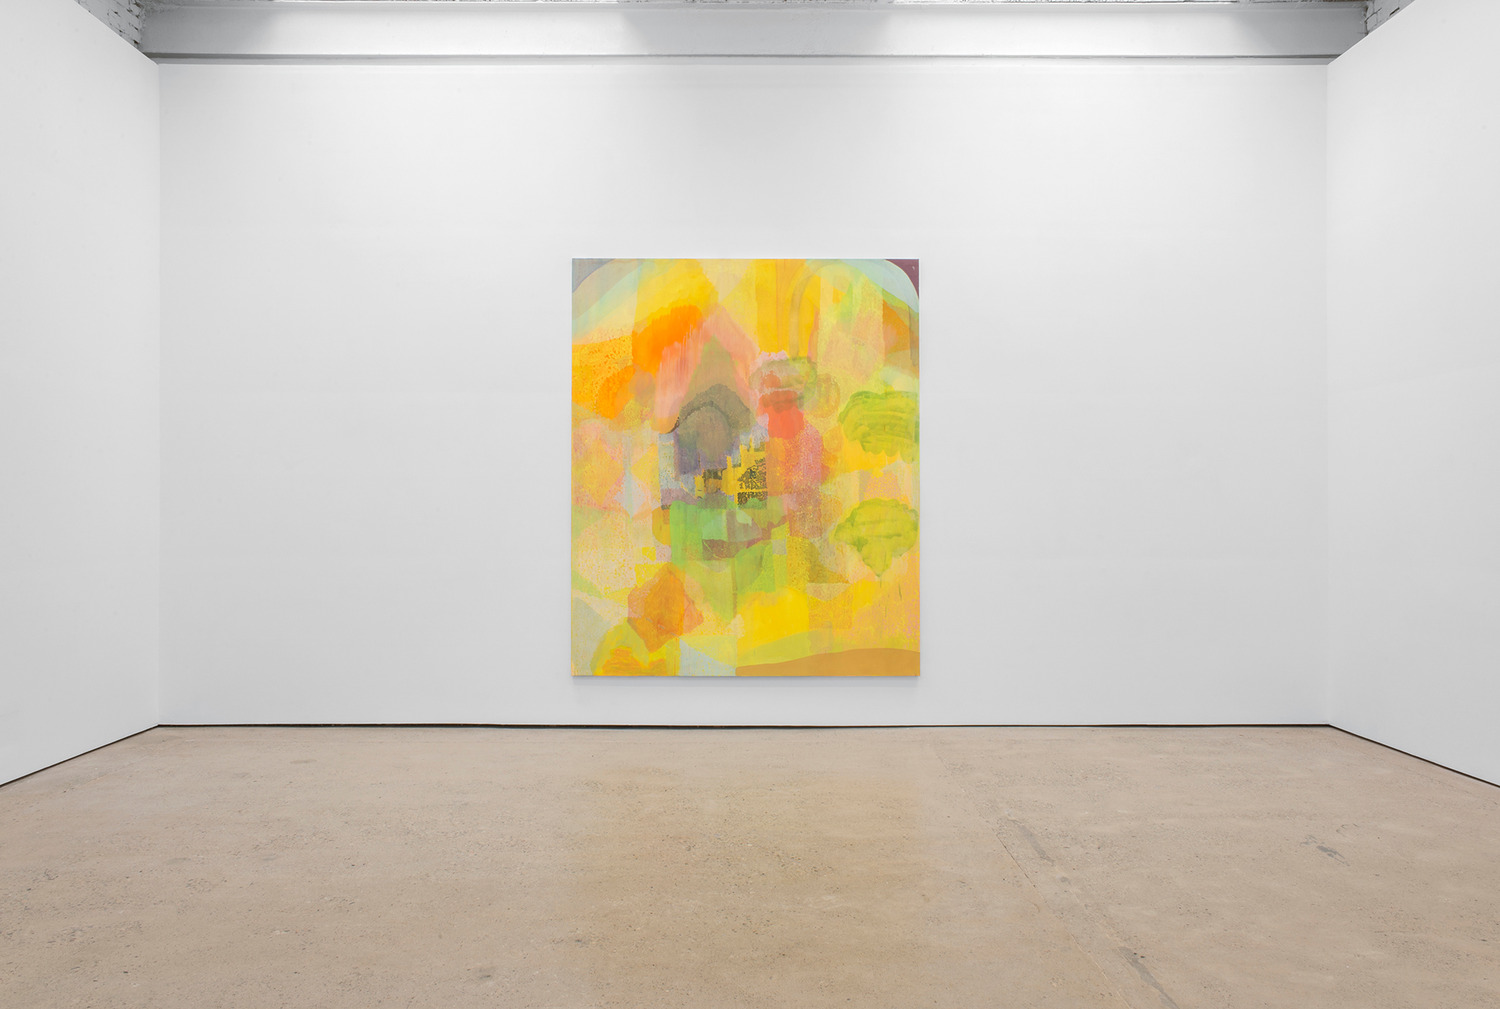 Victoria Morton, Delay Dispersion, 2014, Oil on canvas, 300 x 250 x 4 cm, Installation view, The Modern Institute, Aird's Lane, Glasgow, 2014